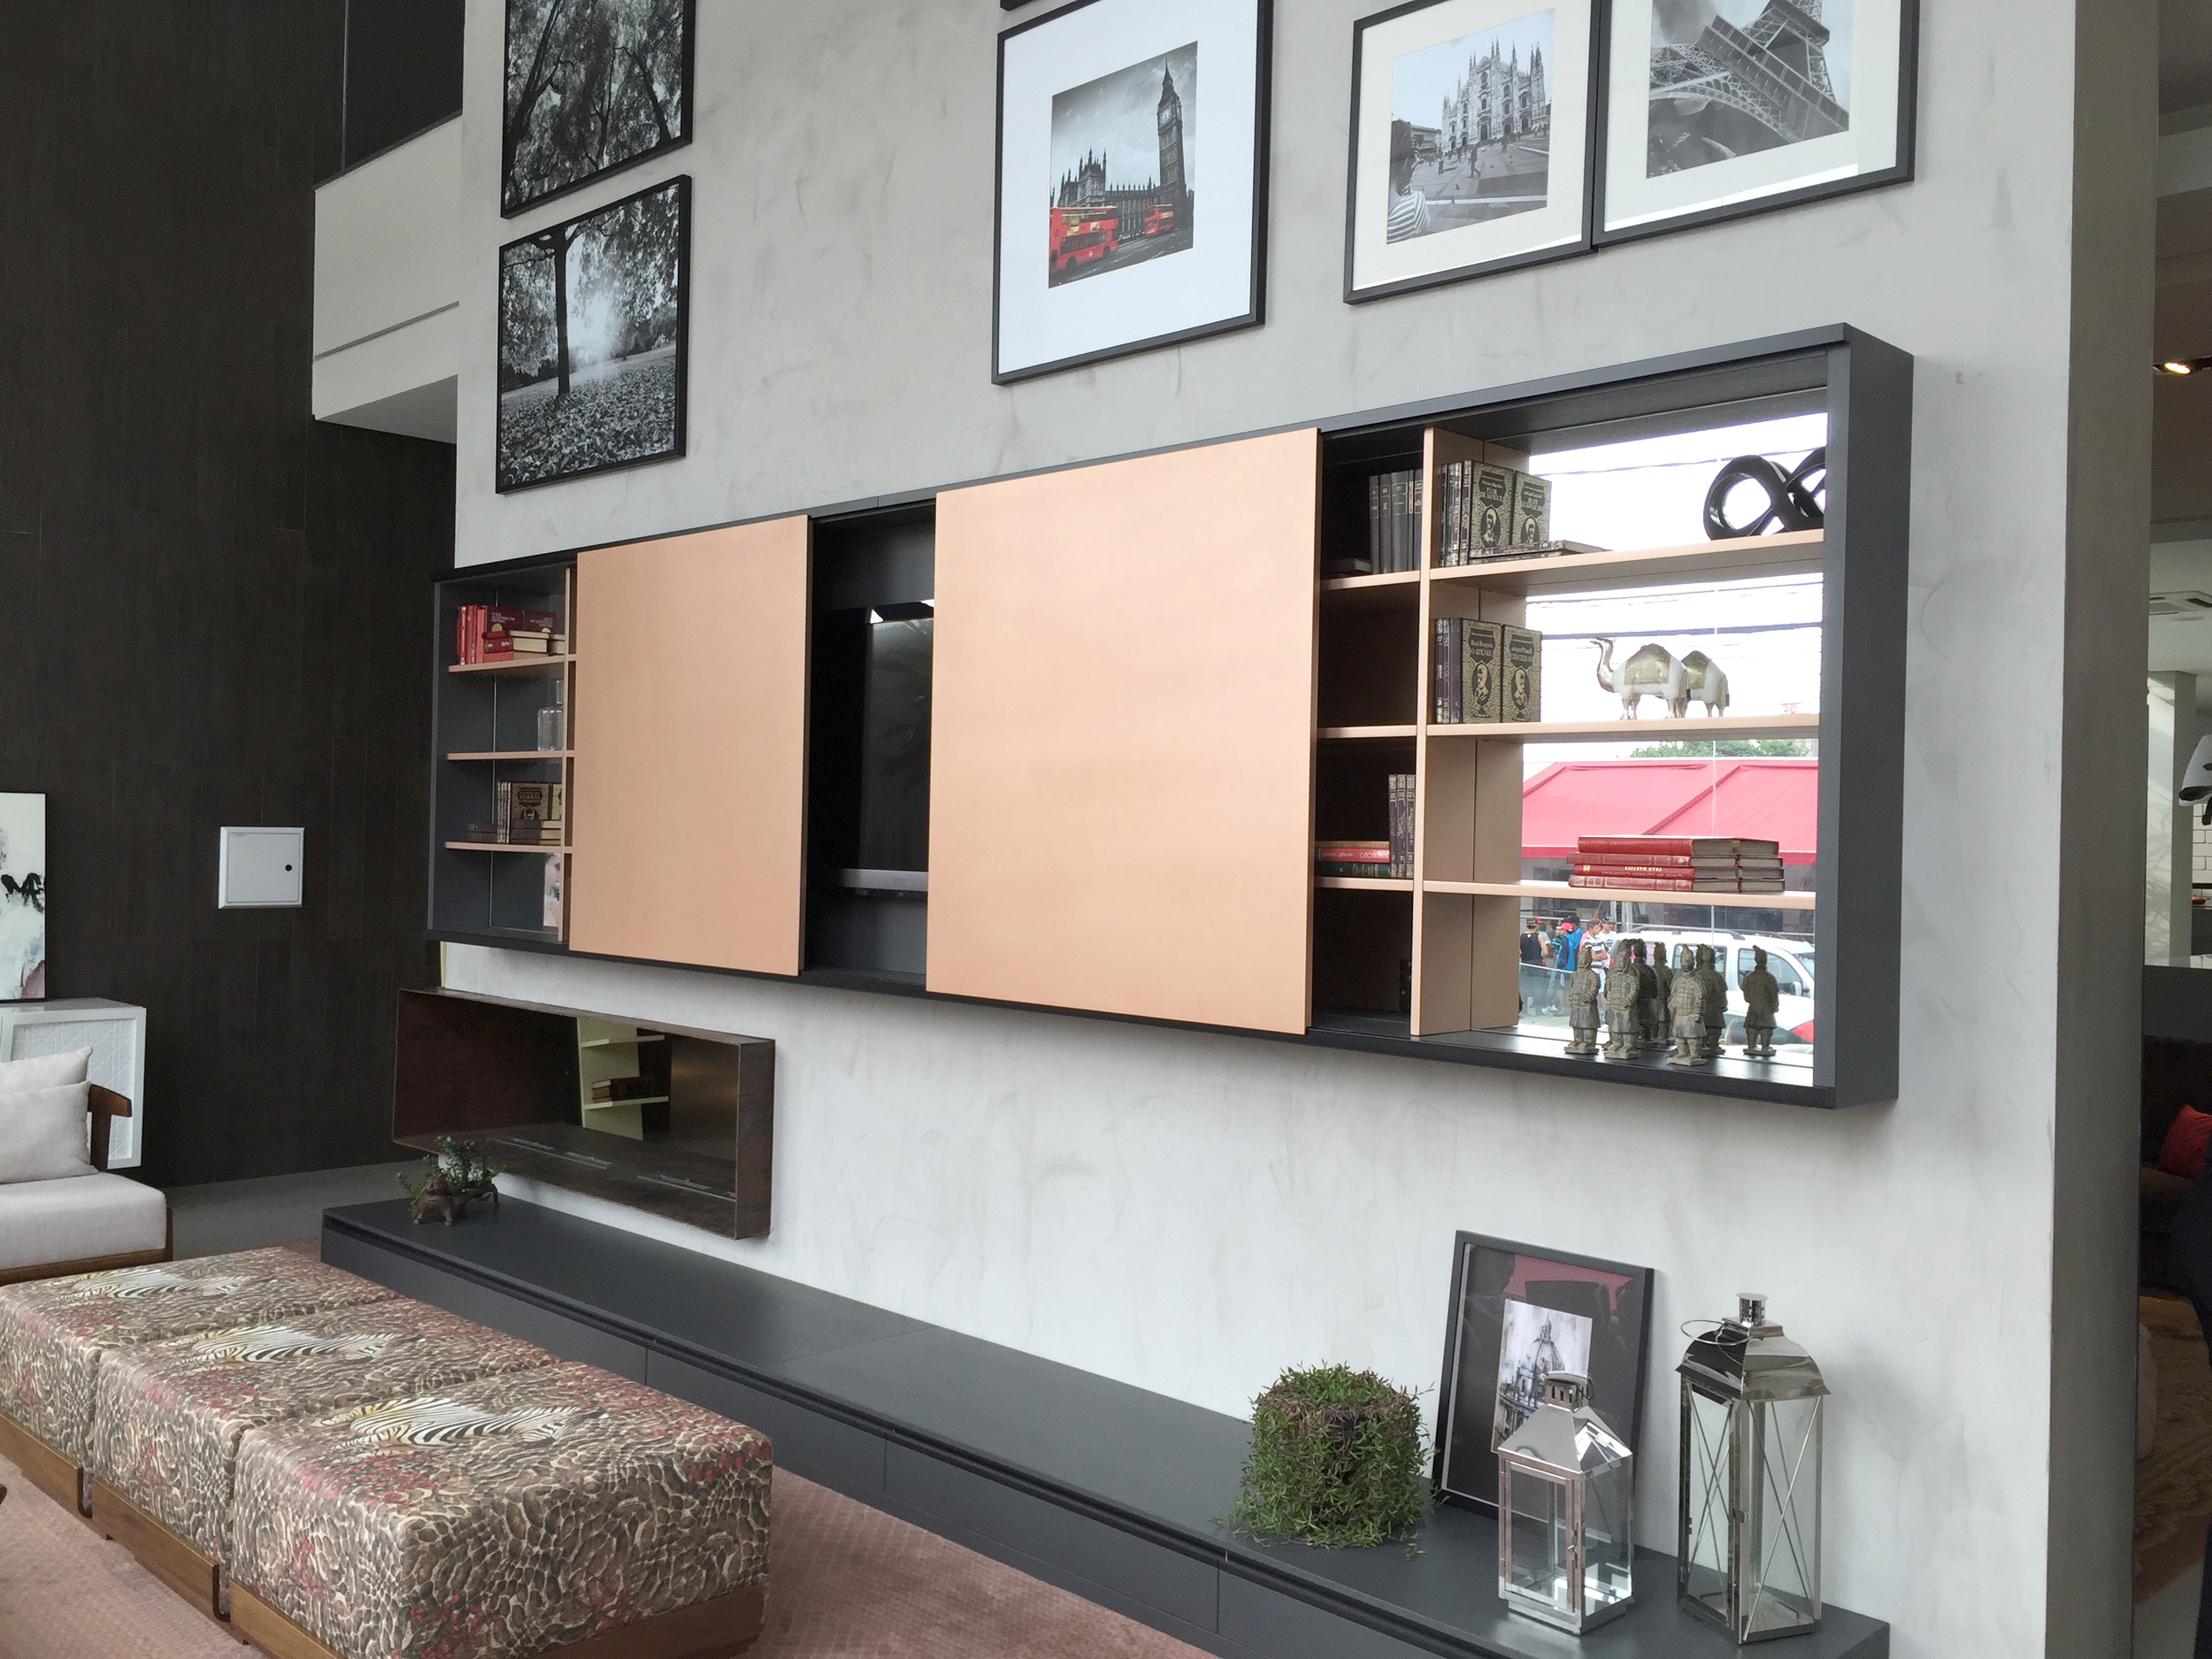 Luxurious pearlescent gold finish on the lounge media units